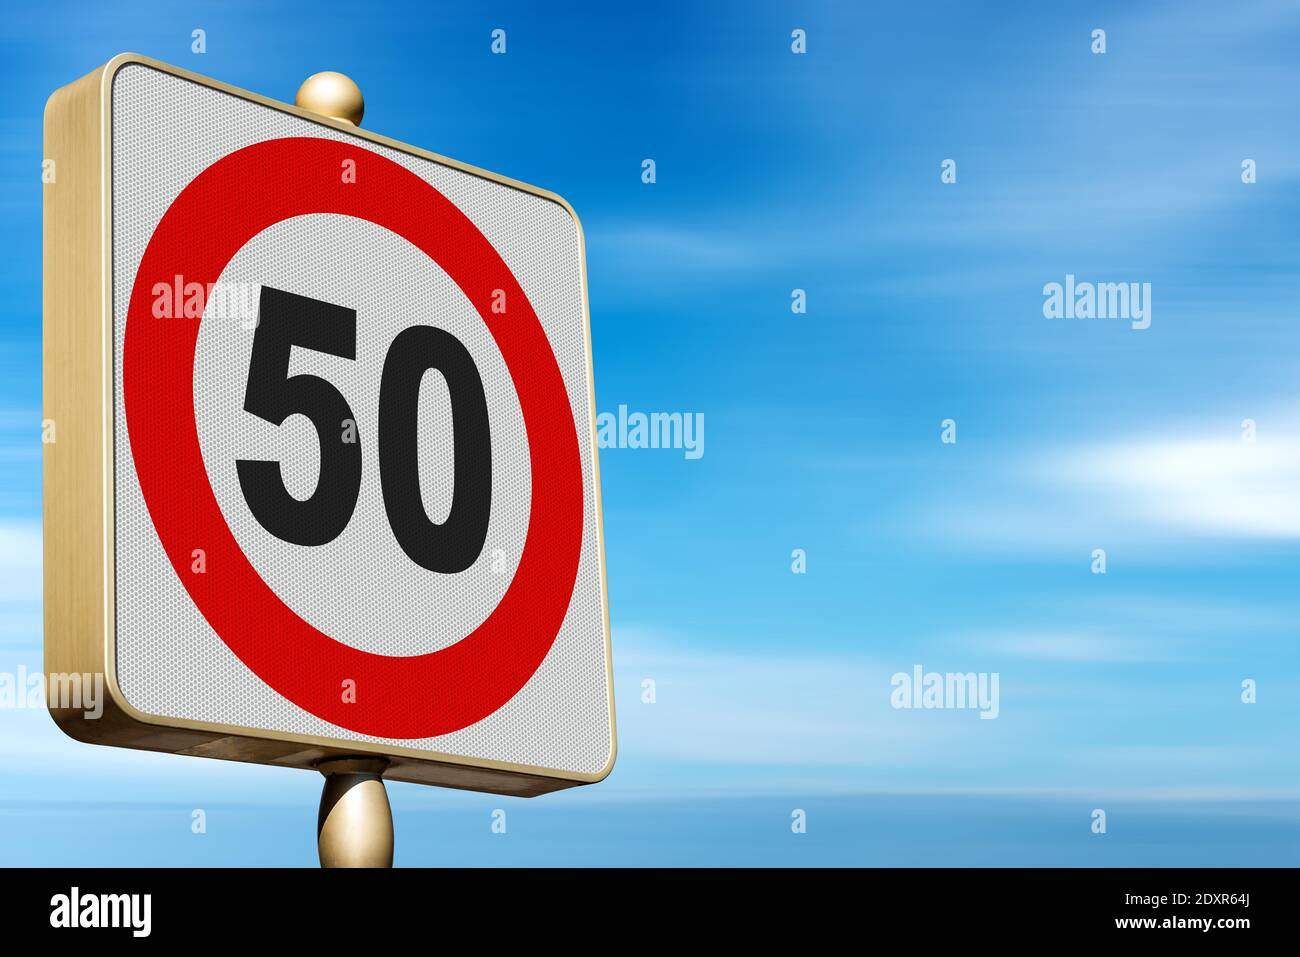 Closeup of a modern Road Sign Speed Limit 50 Kmh (kilometers per hour), on blue sky with clouds and copy space. Stock Photo